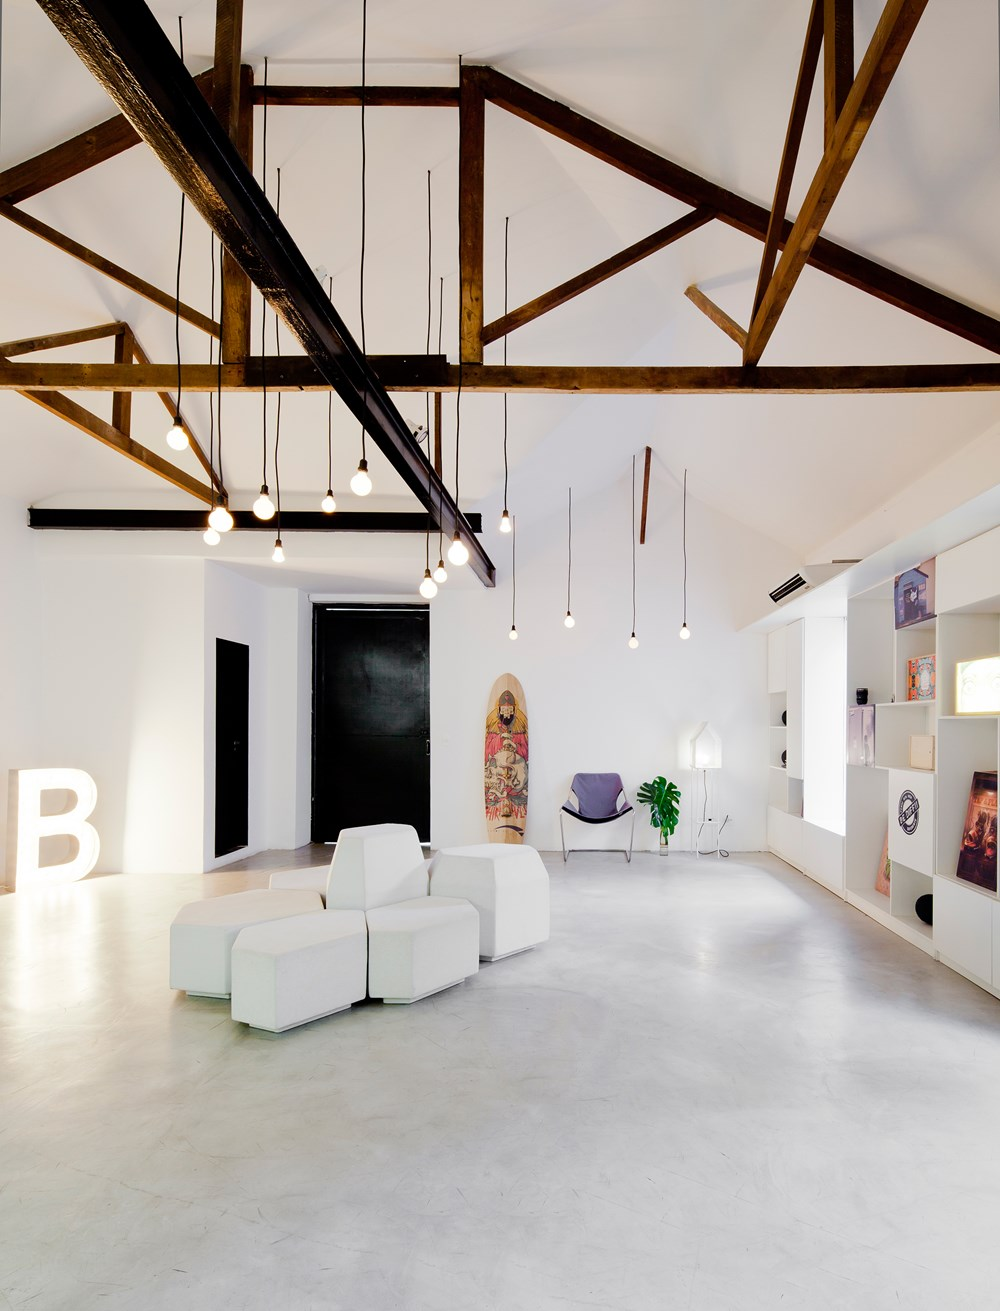 Bediff Exhibition Space by ESTUDIO BRA 07